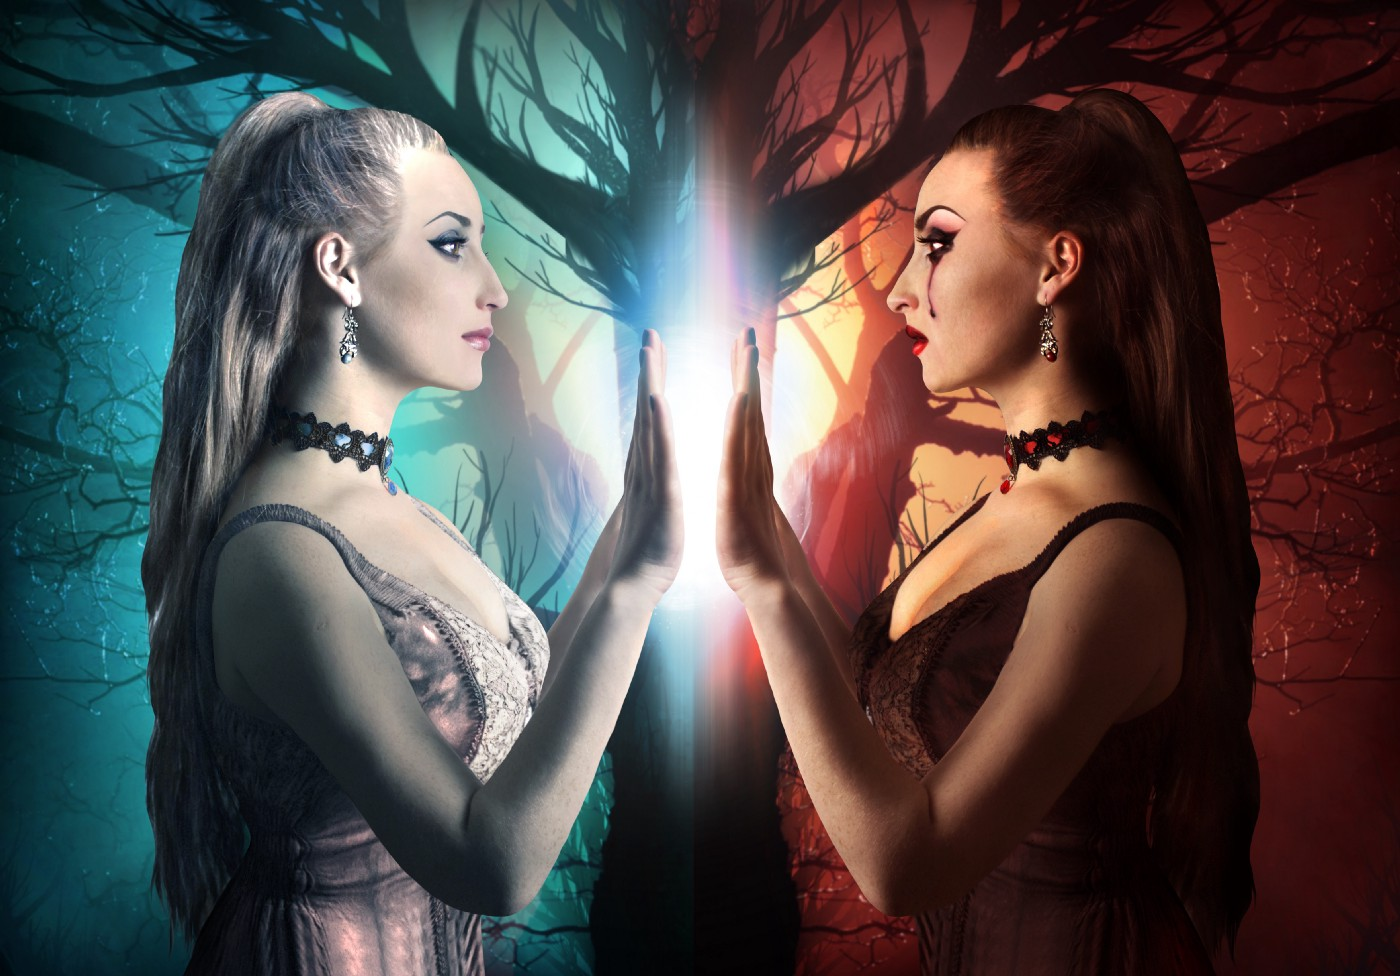 Illustration of goth-looking woman with a fire and ice style mirror image against a dead tree